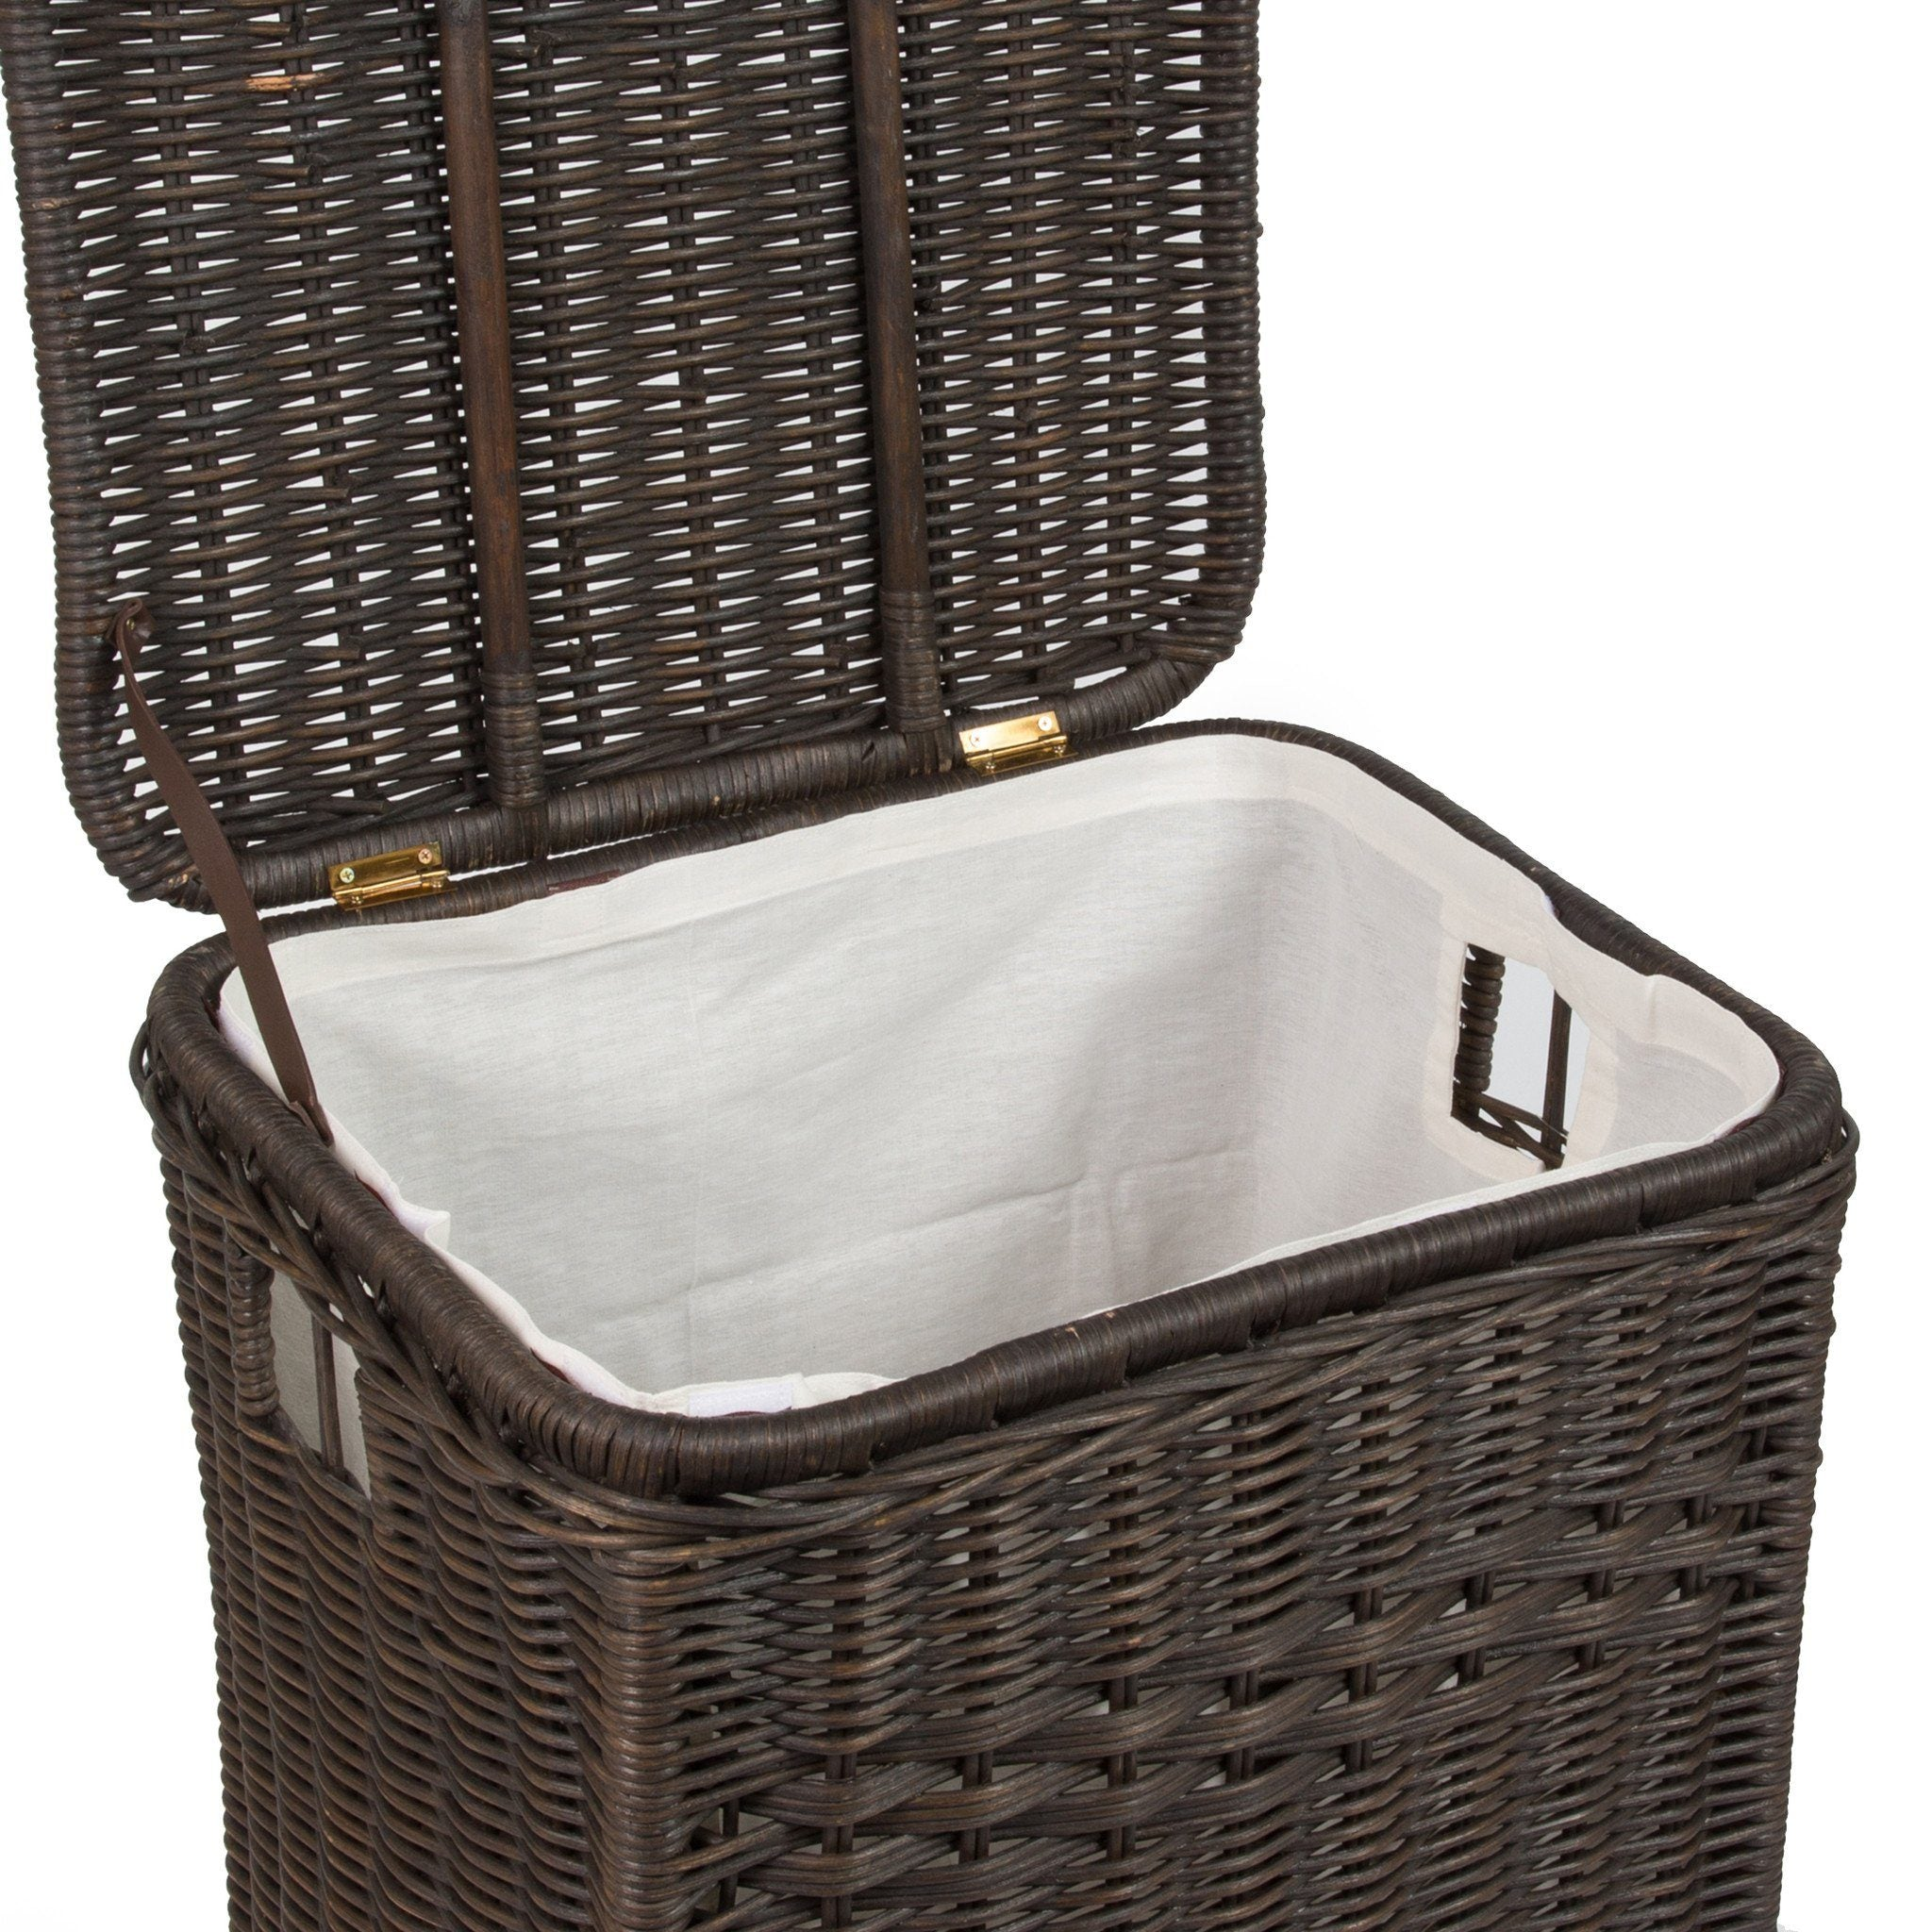 Fabric Liner for Rectangular Wicker Laundry H&er  sc 1 st  The Basket Lady & Fabric Liner For Rectangular Wicker Laundry Hamper - The Basket Lady